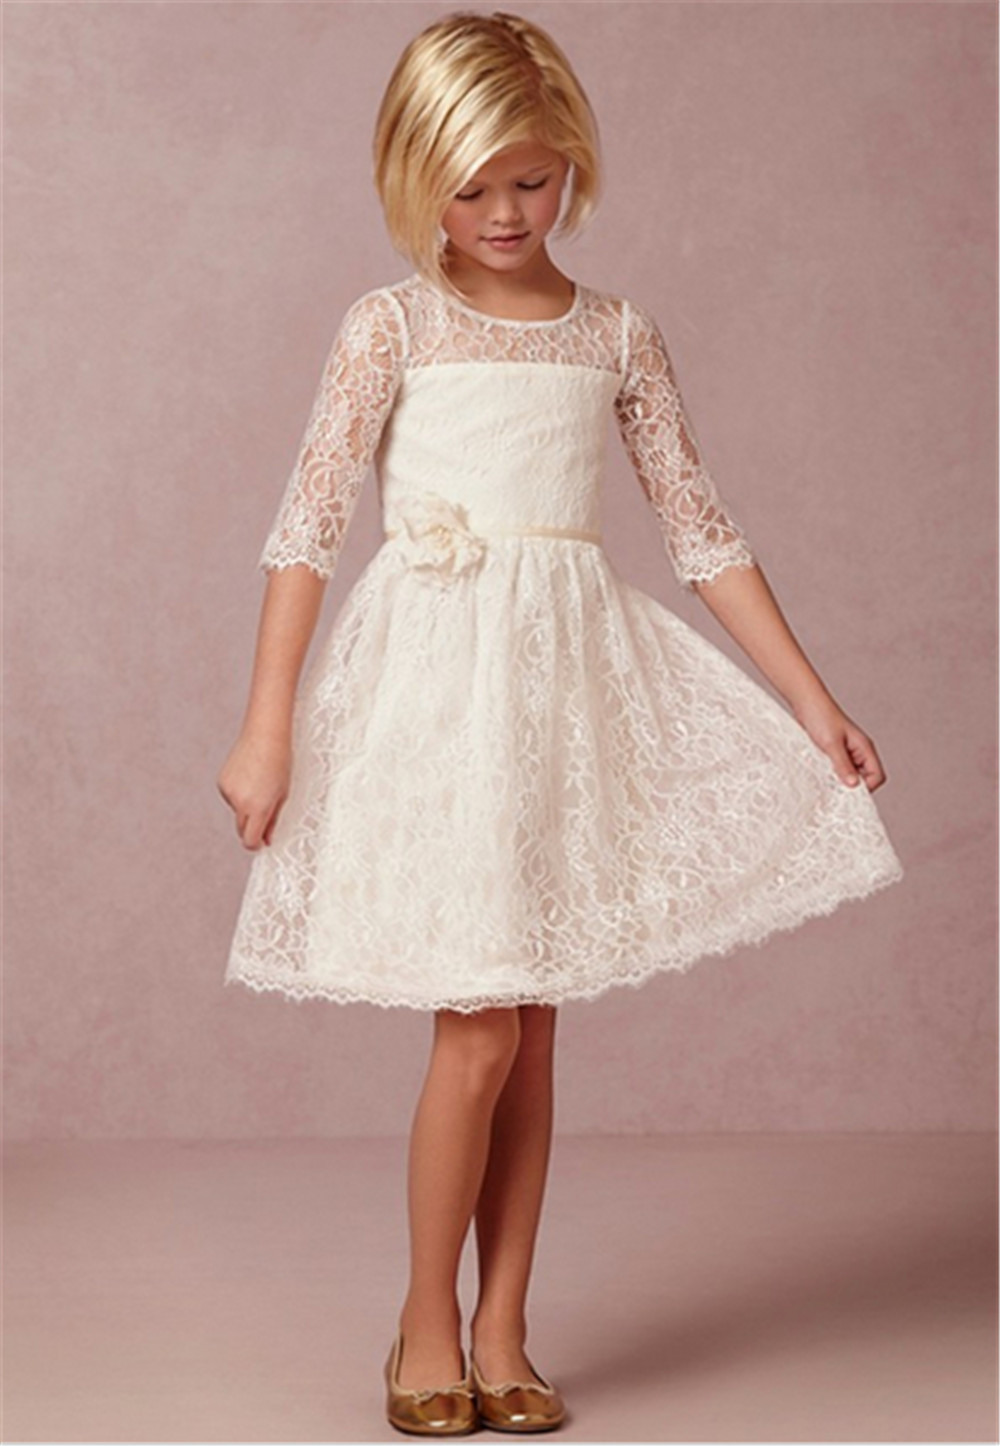 Vintage Lace Dresses for Girls